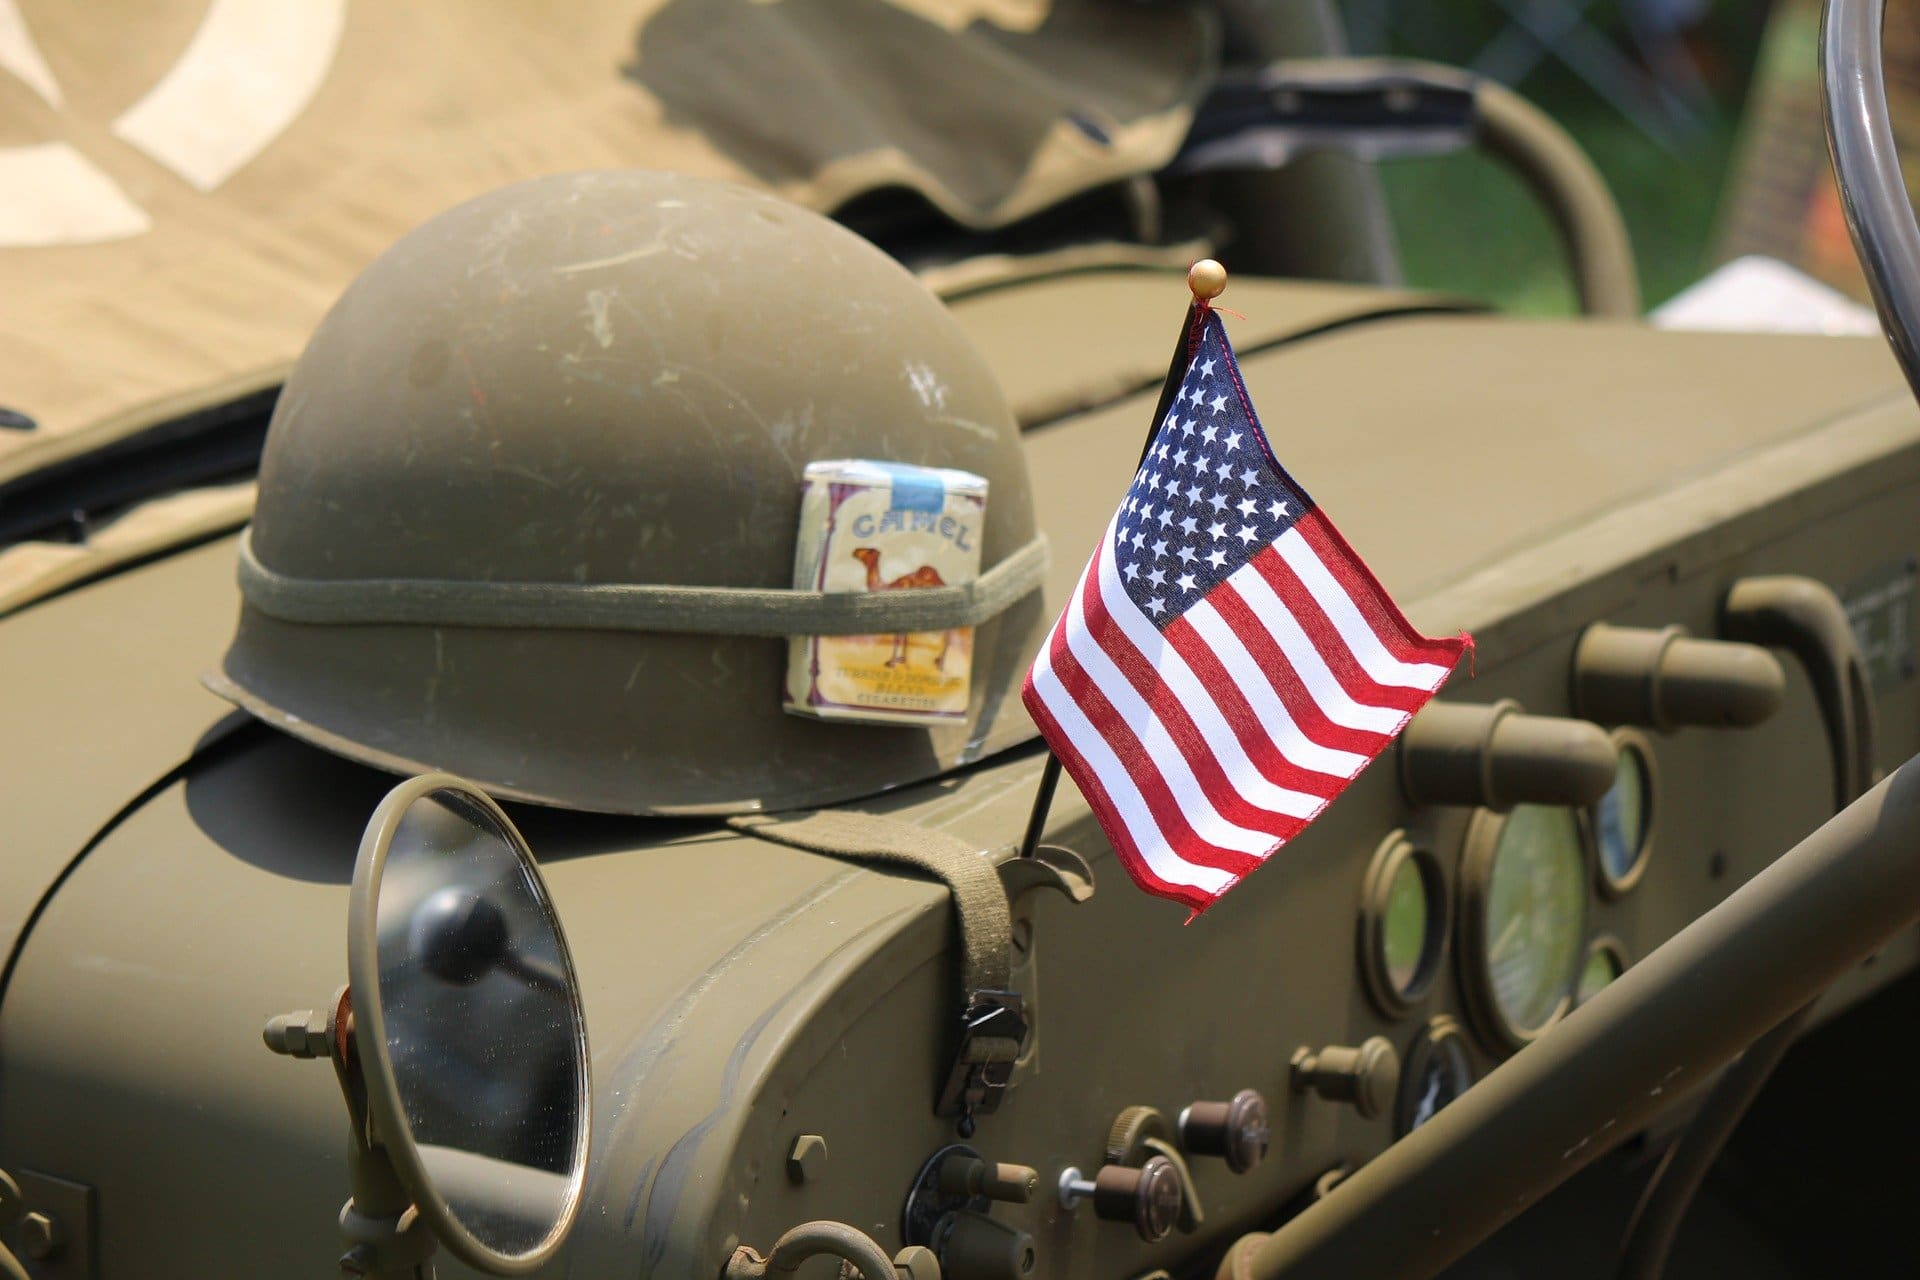 image of the helmet and old army vehicle